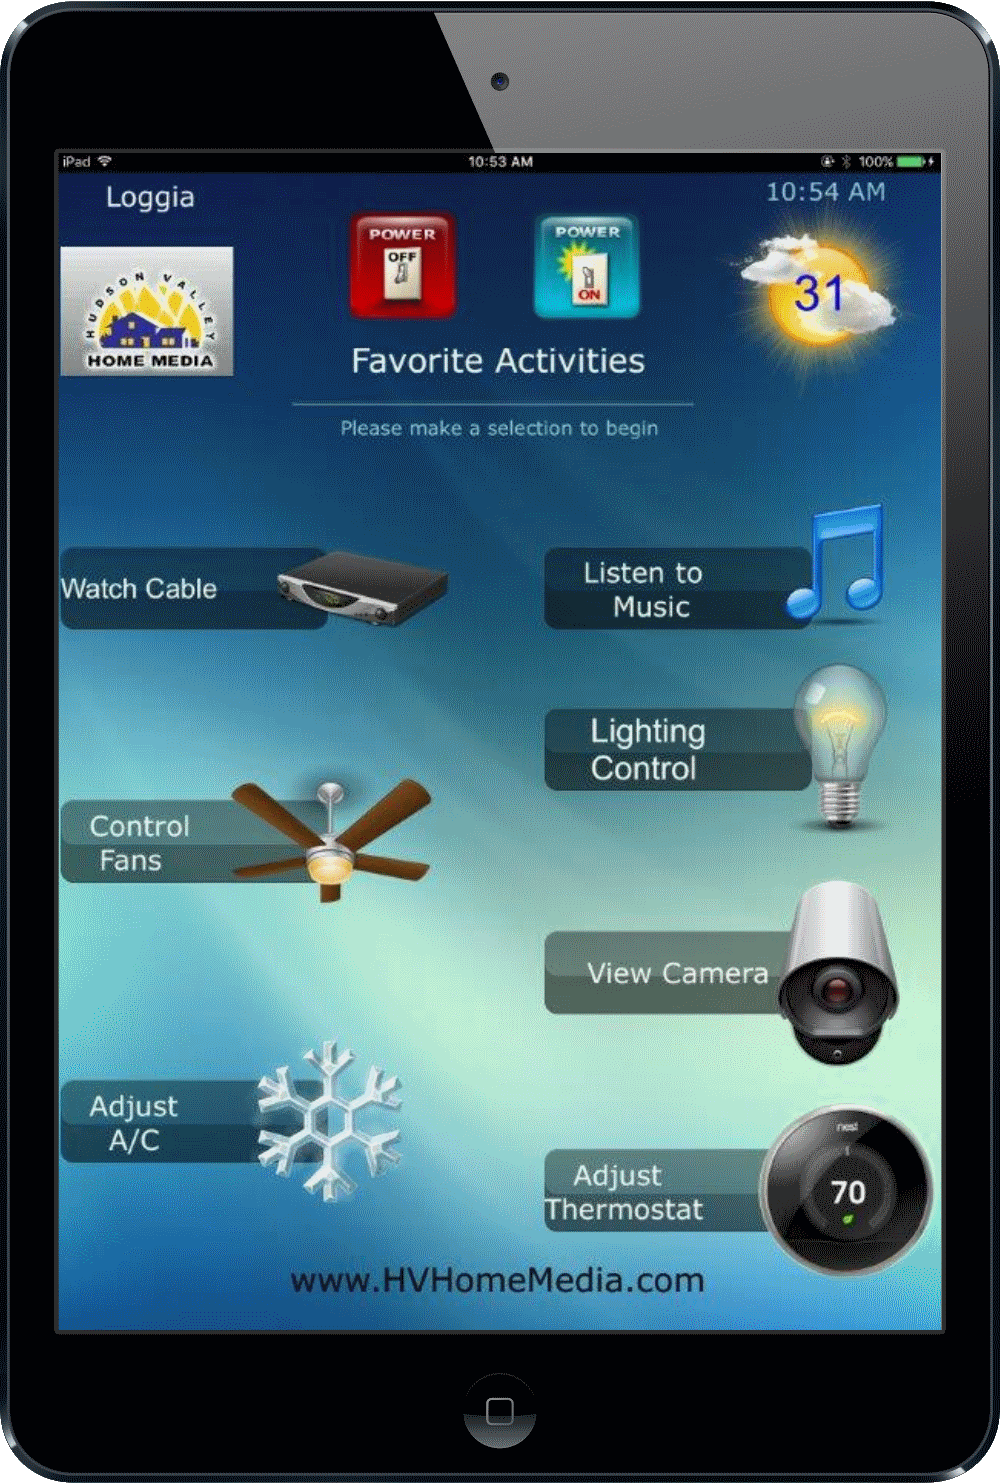 Universal Ipad Remote - Nyack, NY - HV Home Media - Hudson Valley Home Media - Smart Home Whole House Automation